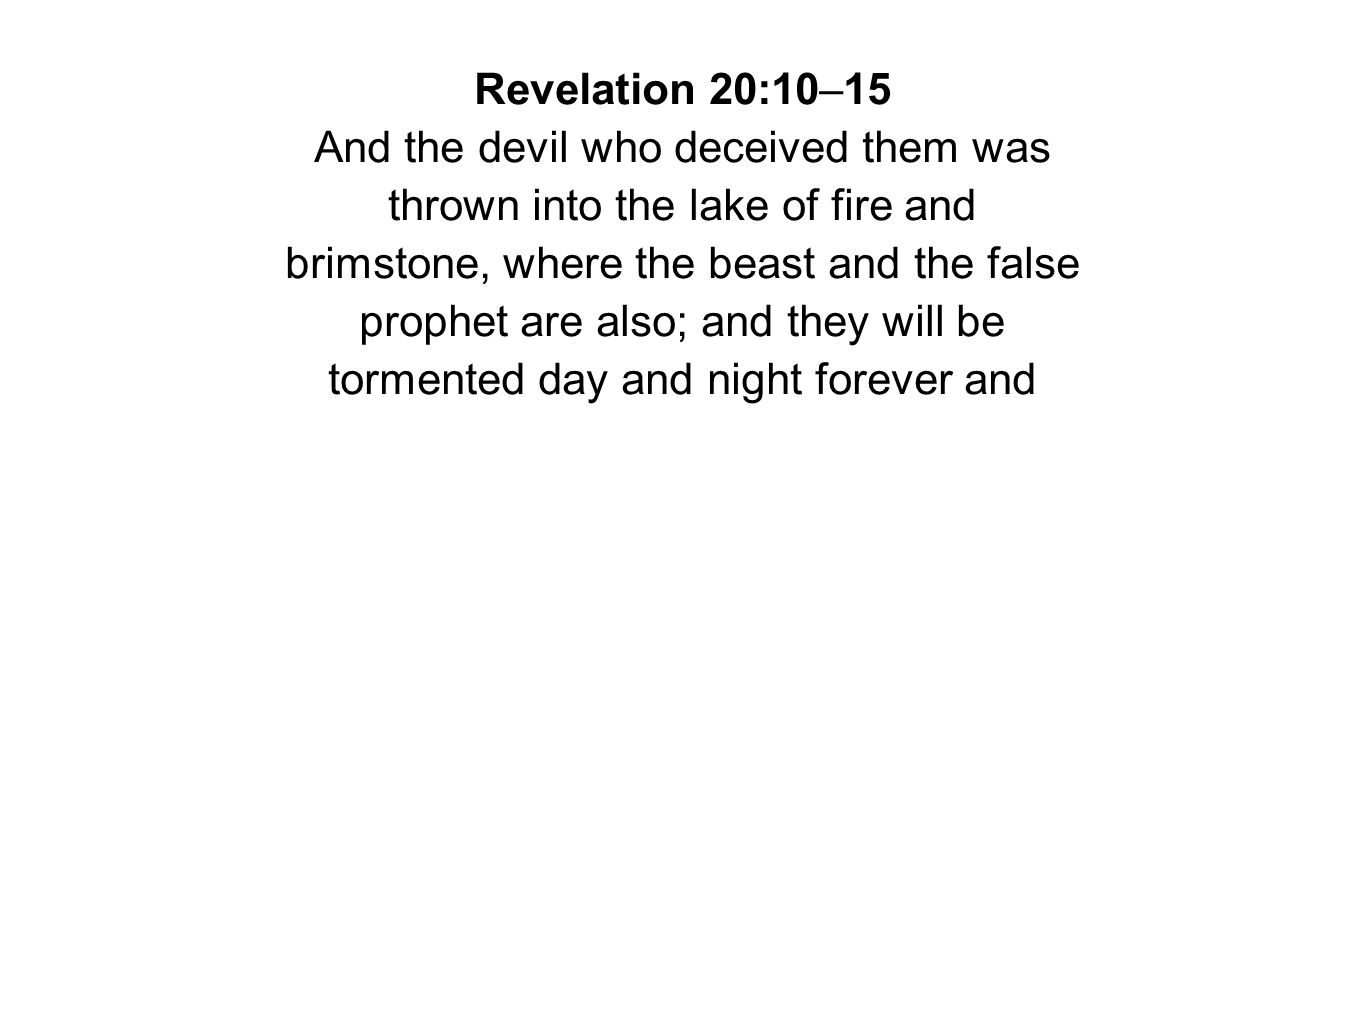 Revelation 20:10–15 And the devil who deceived them was thrown into the lake of fire and brimstone, where the beast and the false prophet are also; and they will be tormented day and night forever and